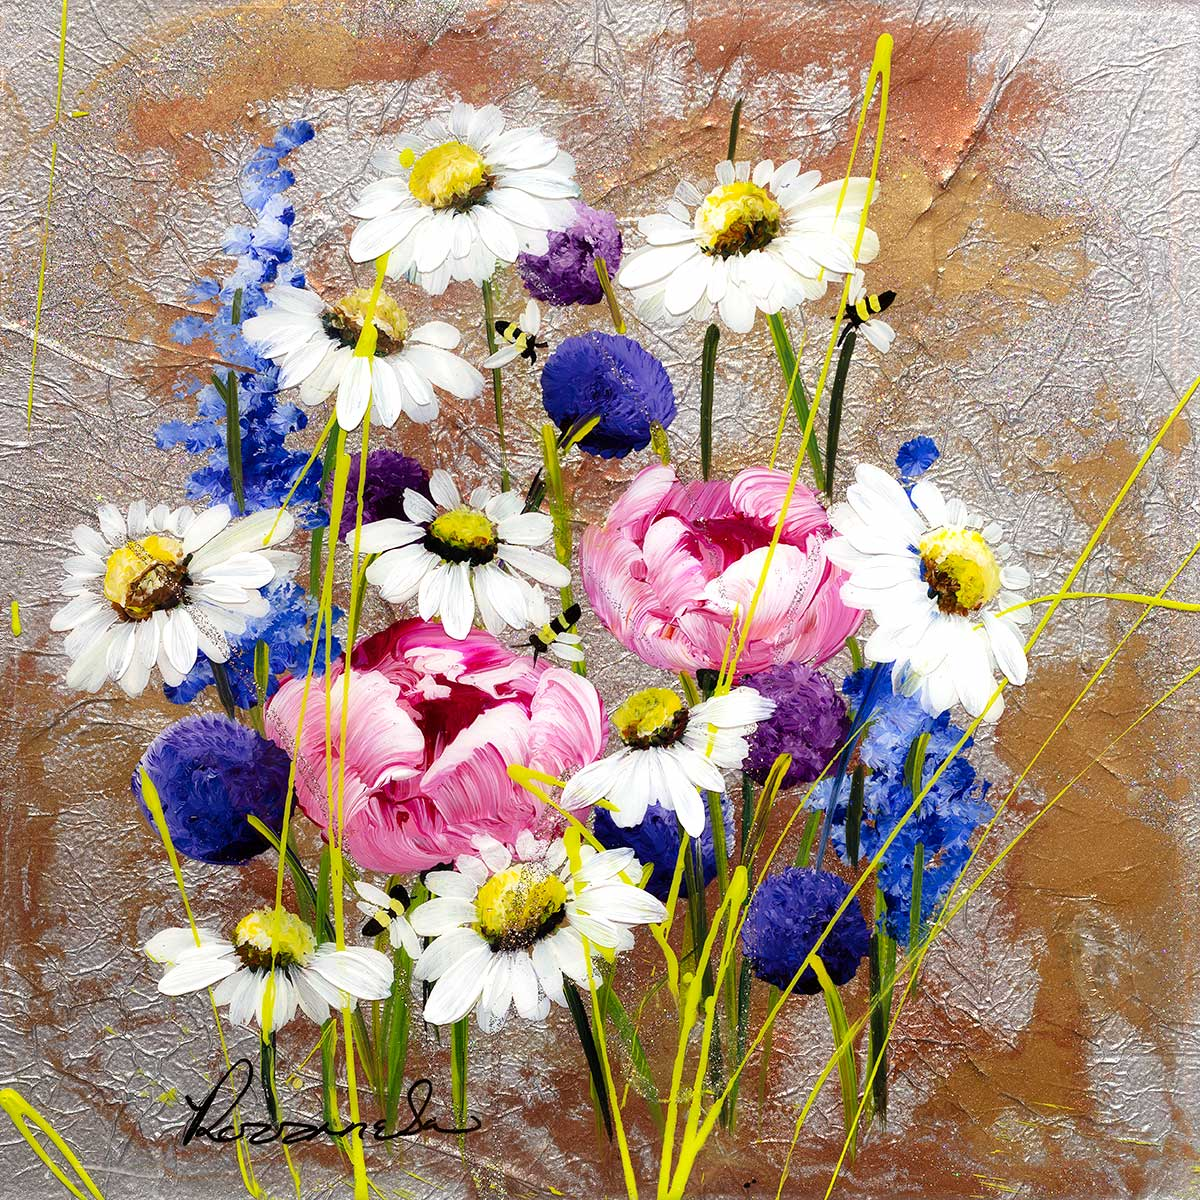 Flowers and Daisies - Original - SOLD